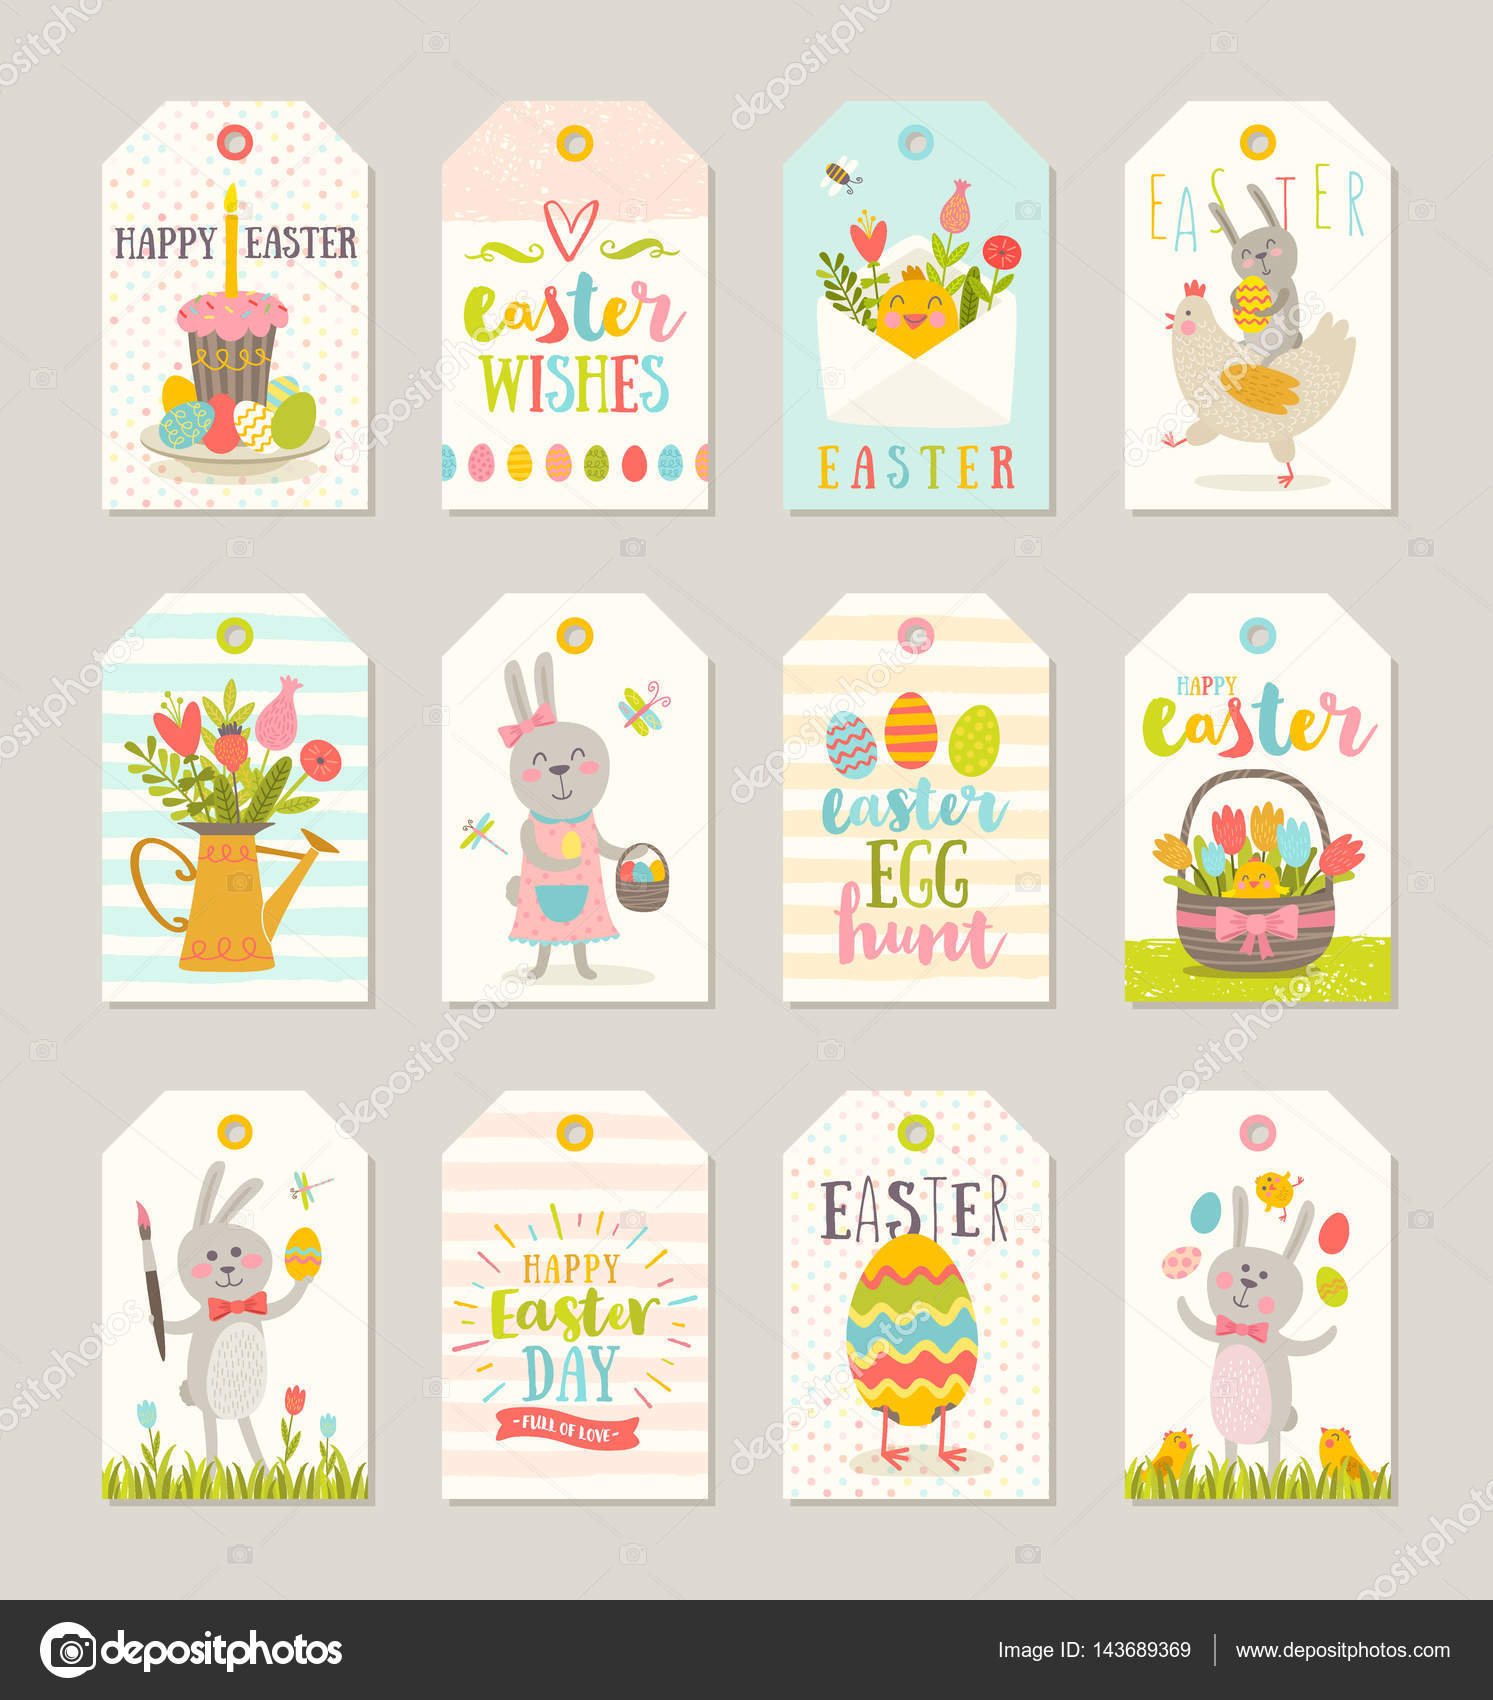 Set of easter gift tags and labels with cute cartoon characters set of easter gift tags and labels with cute cartoon characters and type design easter negle Image collections